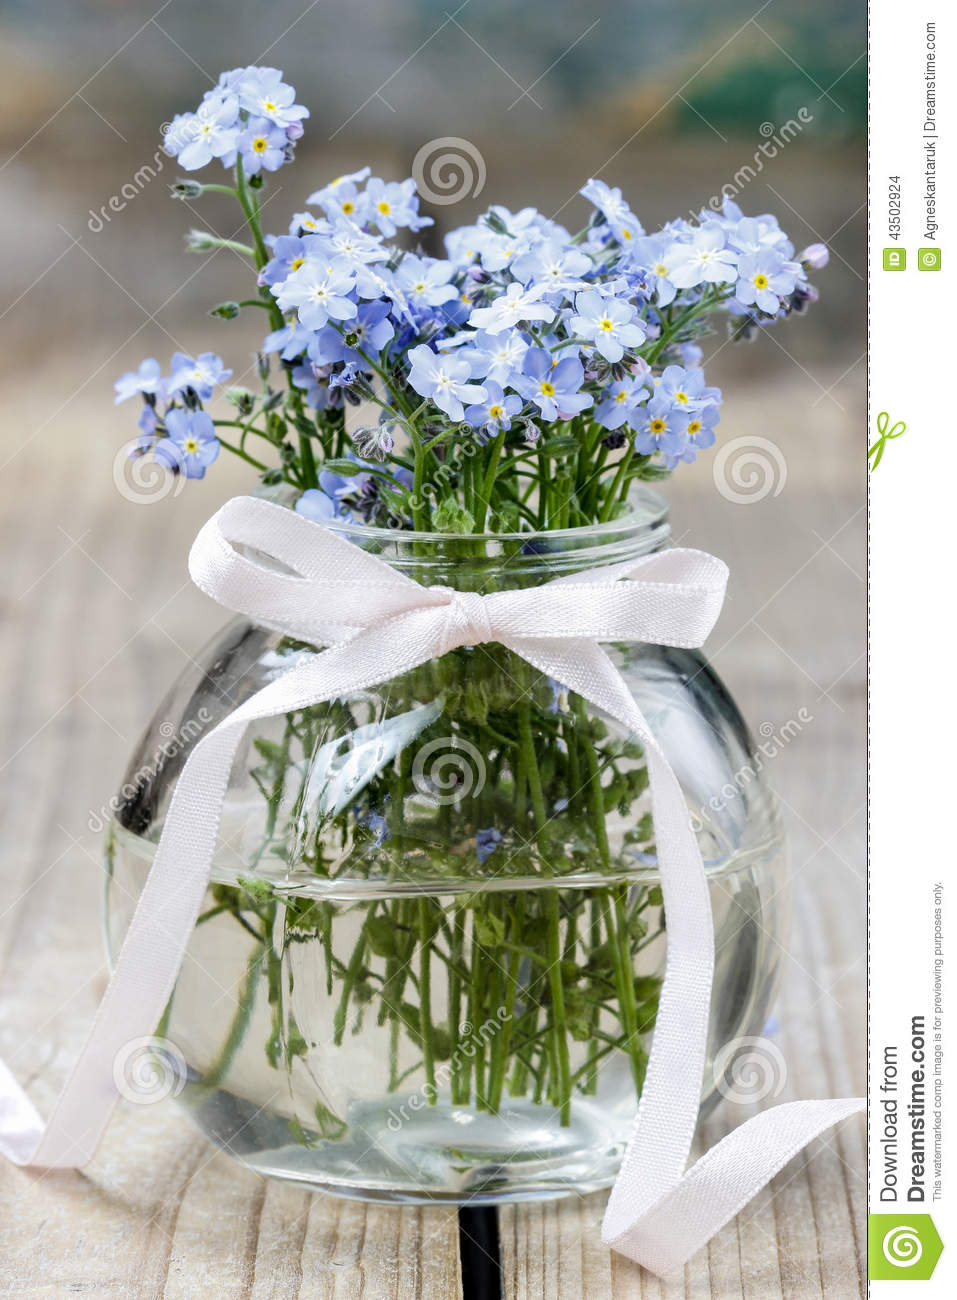 Bouquet Of Forget Me Not Flowers In Glass Vase Stock Photo Image 43502924